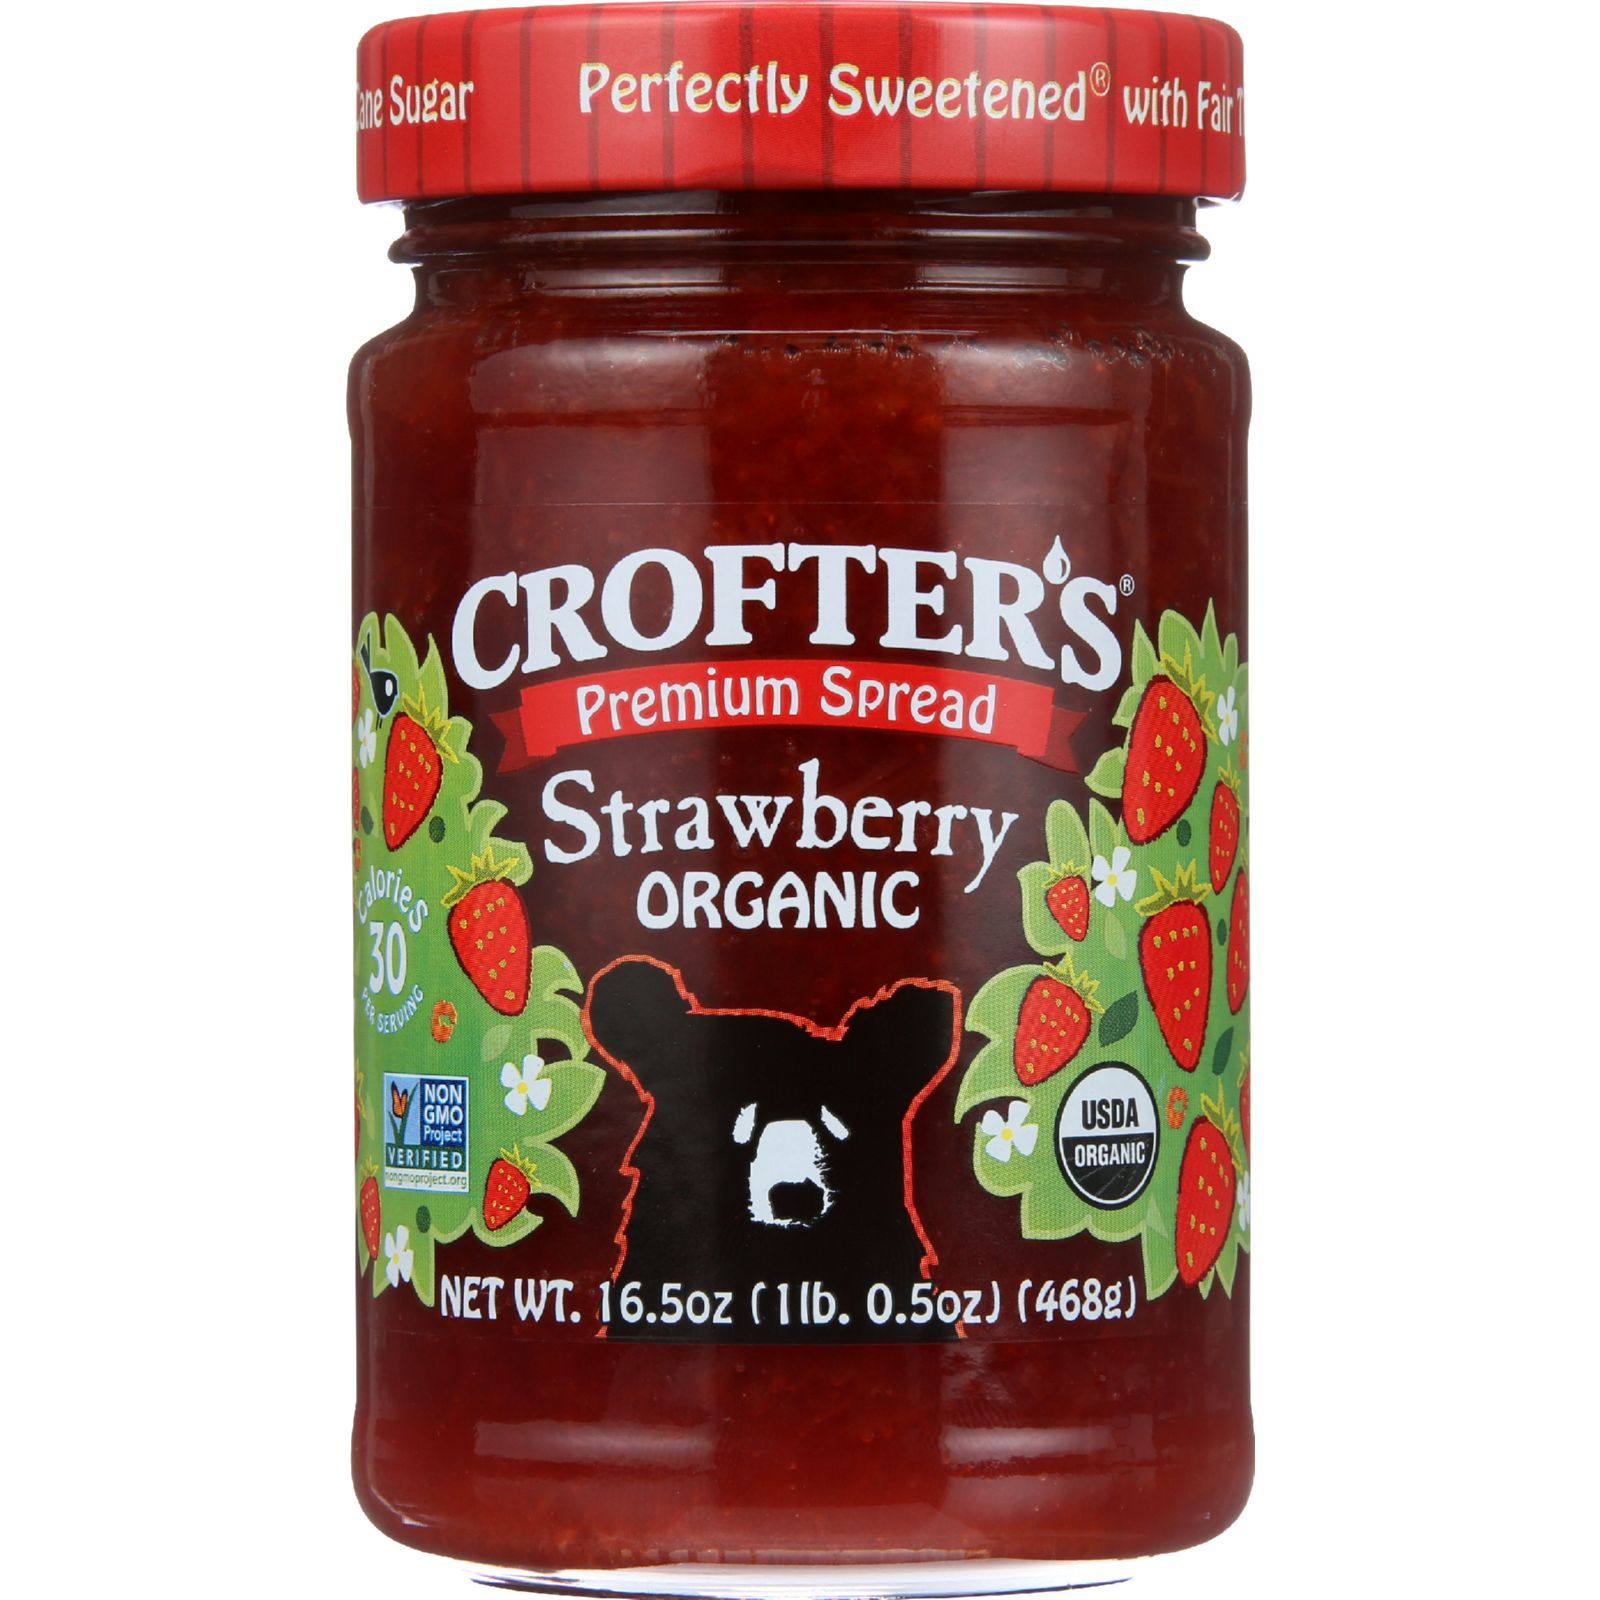 Crofters Fruit Spread - Organic - Premium - Strawberry - 16.5 oz - case of 6